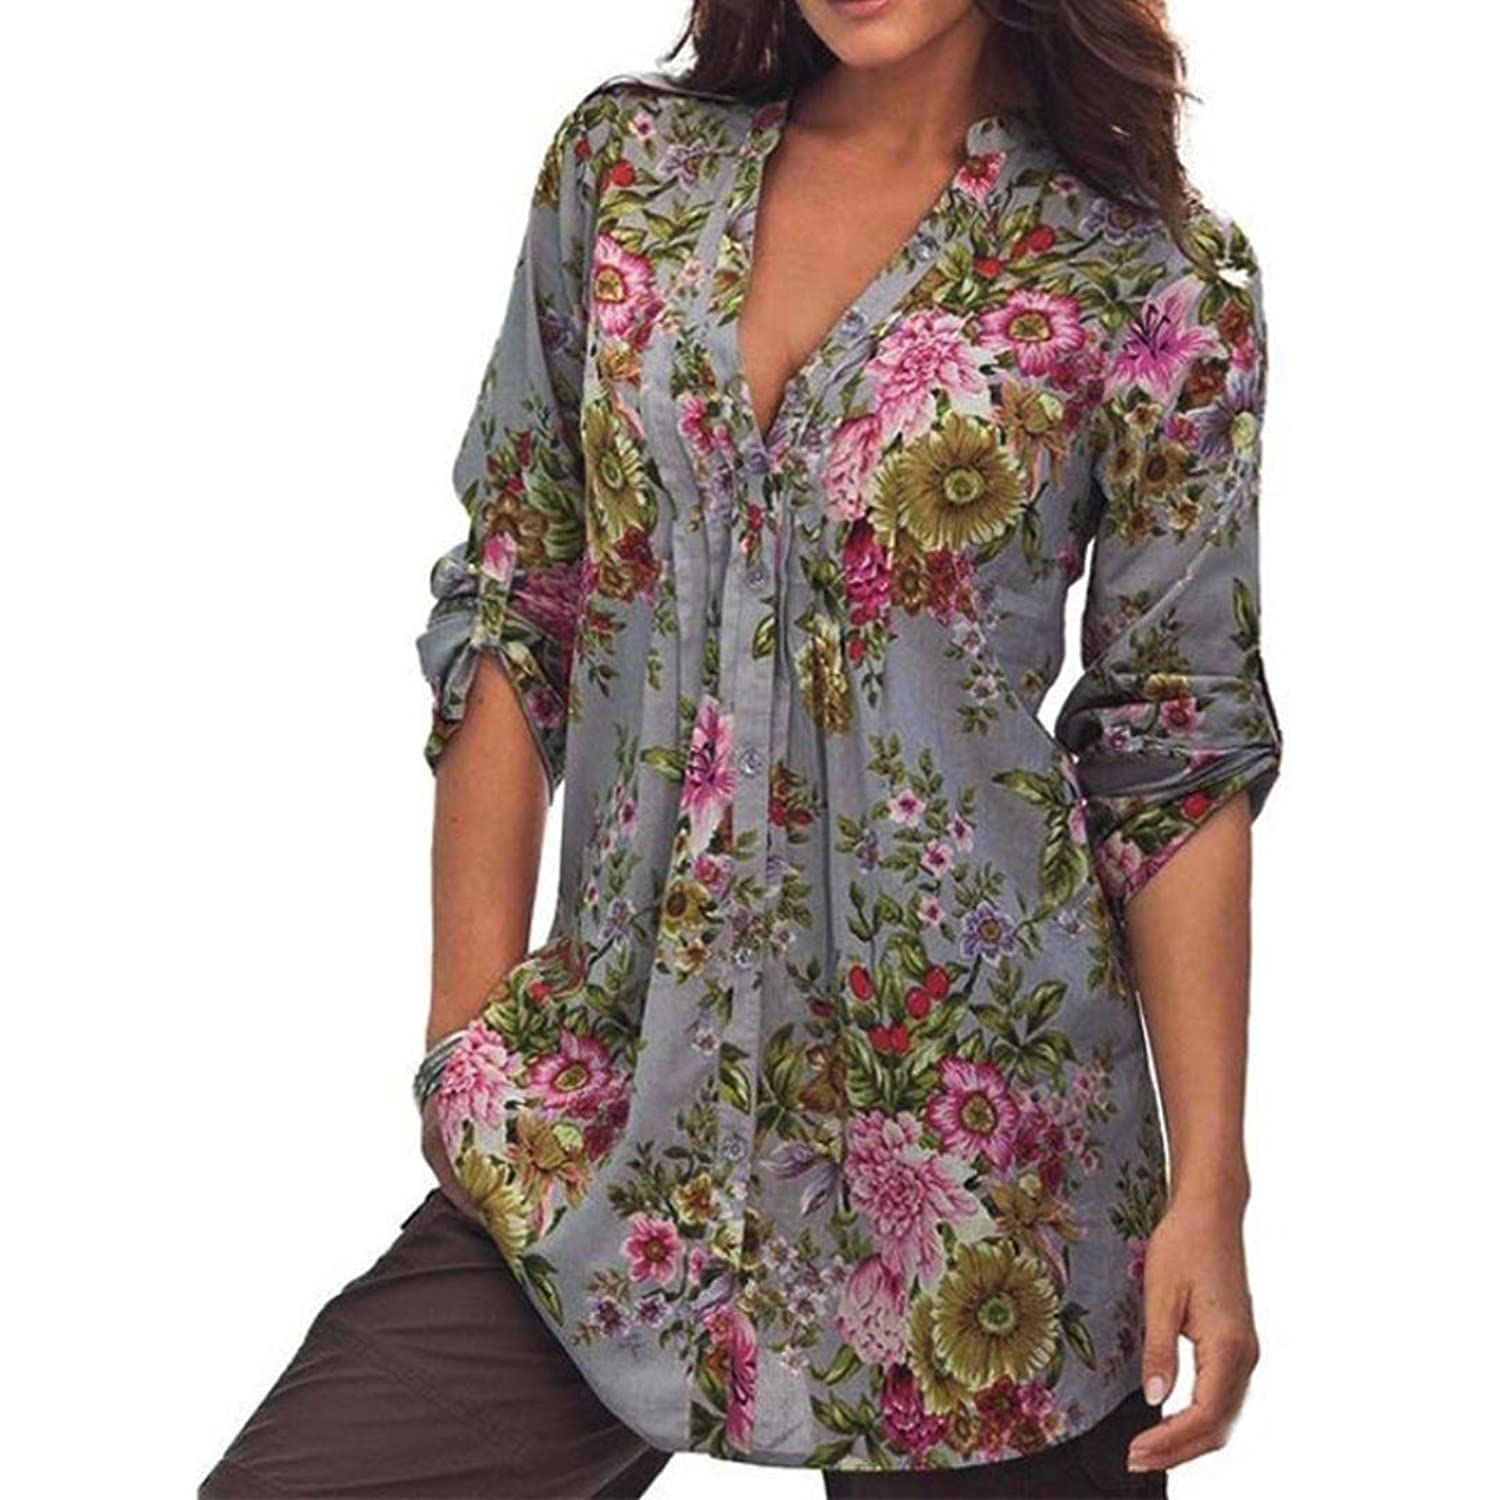 Amazon.com: DondPO Women 3/4 Sleeve Floral Print T-Shirt Comfy Casual Tops Vintage Floral Print V-Neck Tunic Tops Womens Fashion Plus Size Tops Loose ...